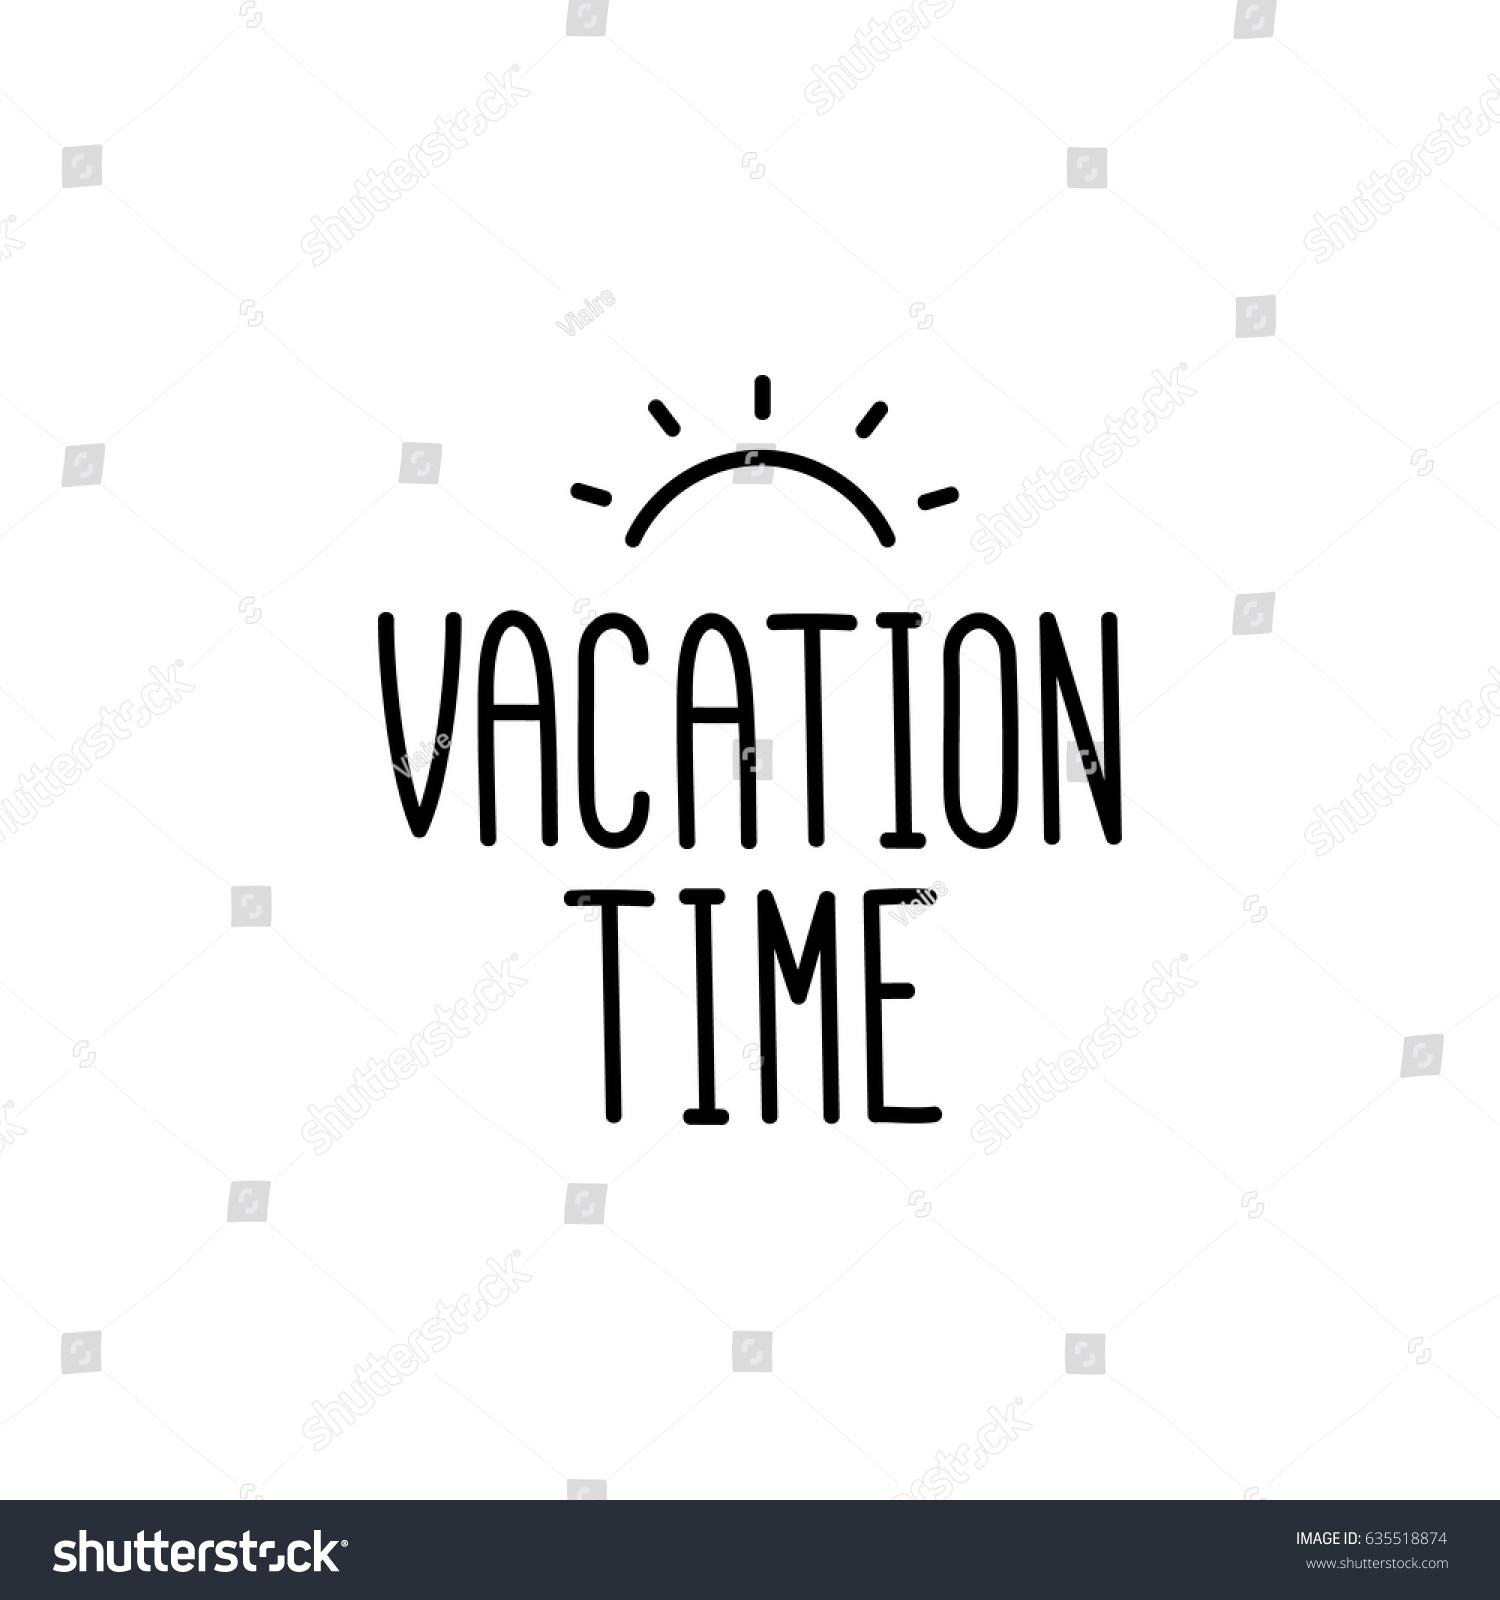 Vacation Quotes Vacation Time Quote Handdrawing Black Ink Stock Vector 635518874